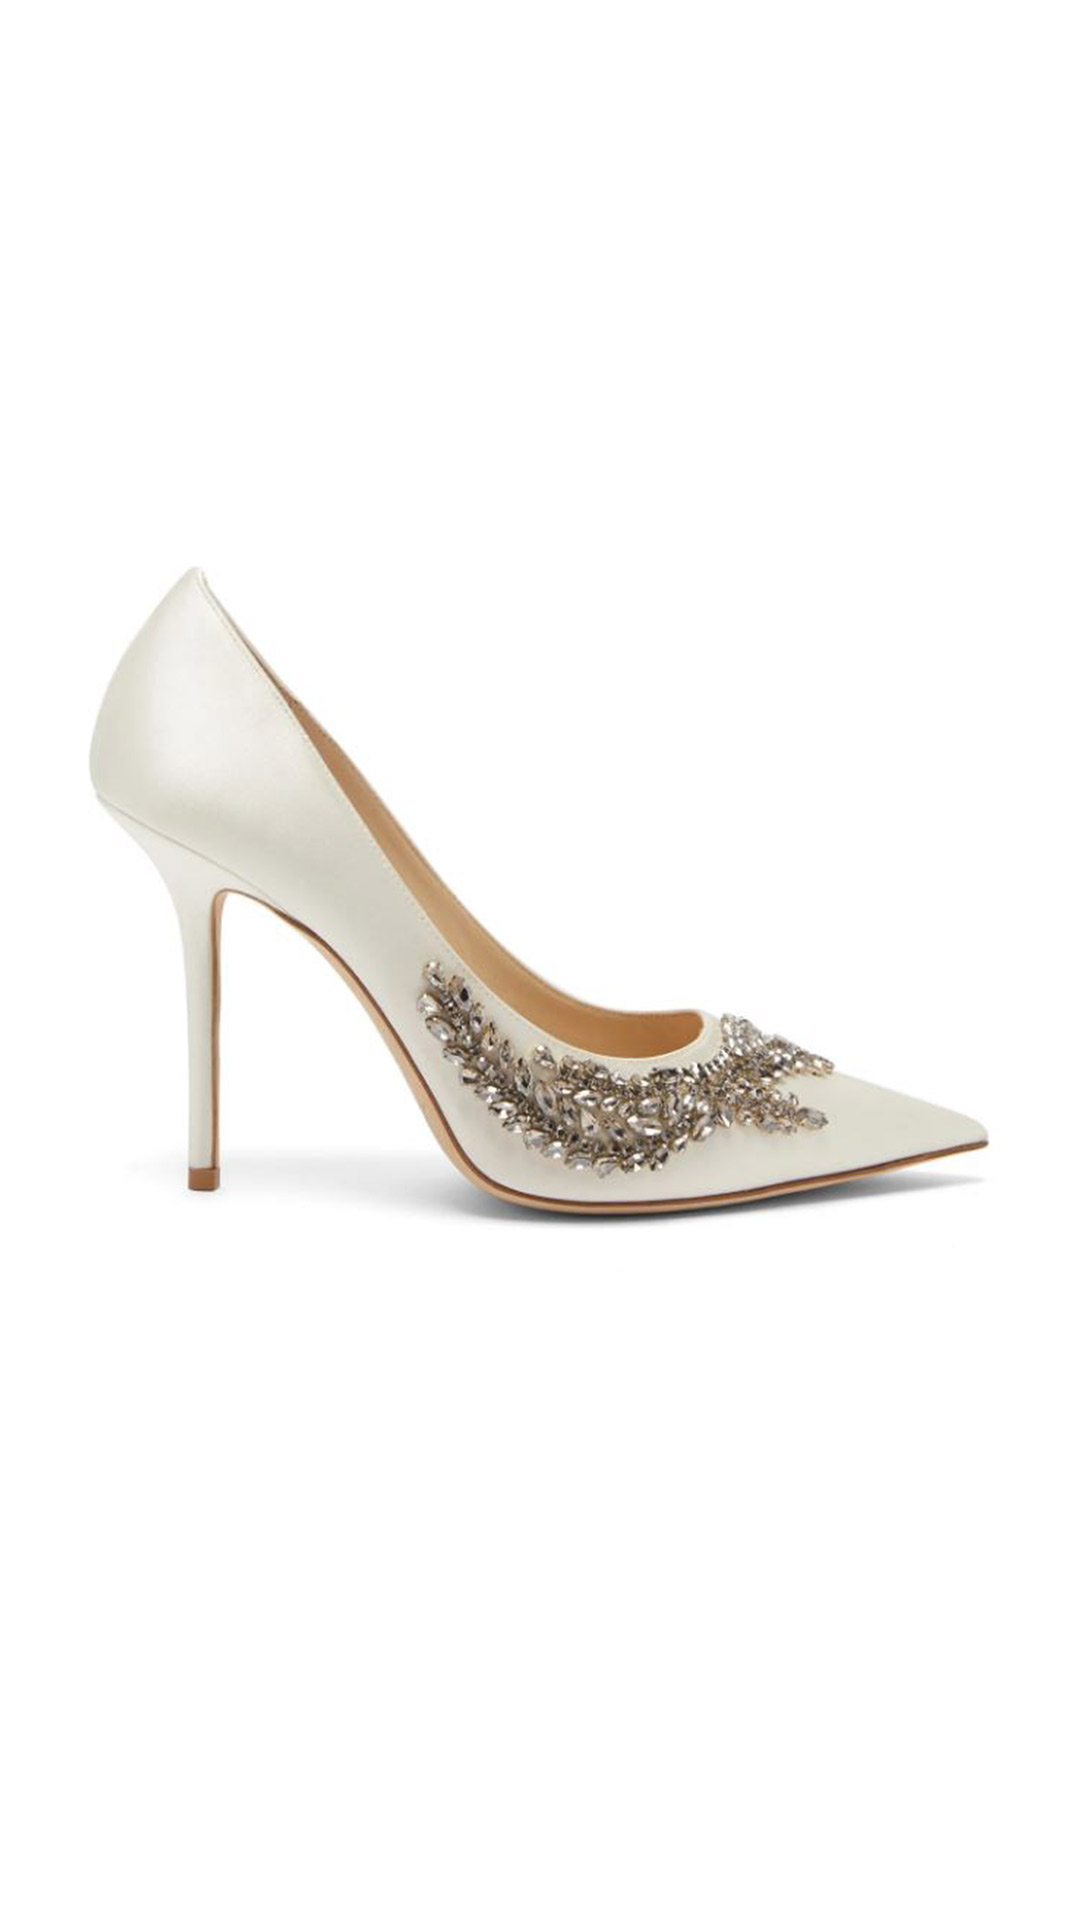 JIMMY CHOO Love Crystal-Embellished Pumps